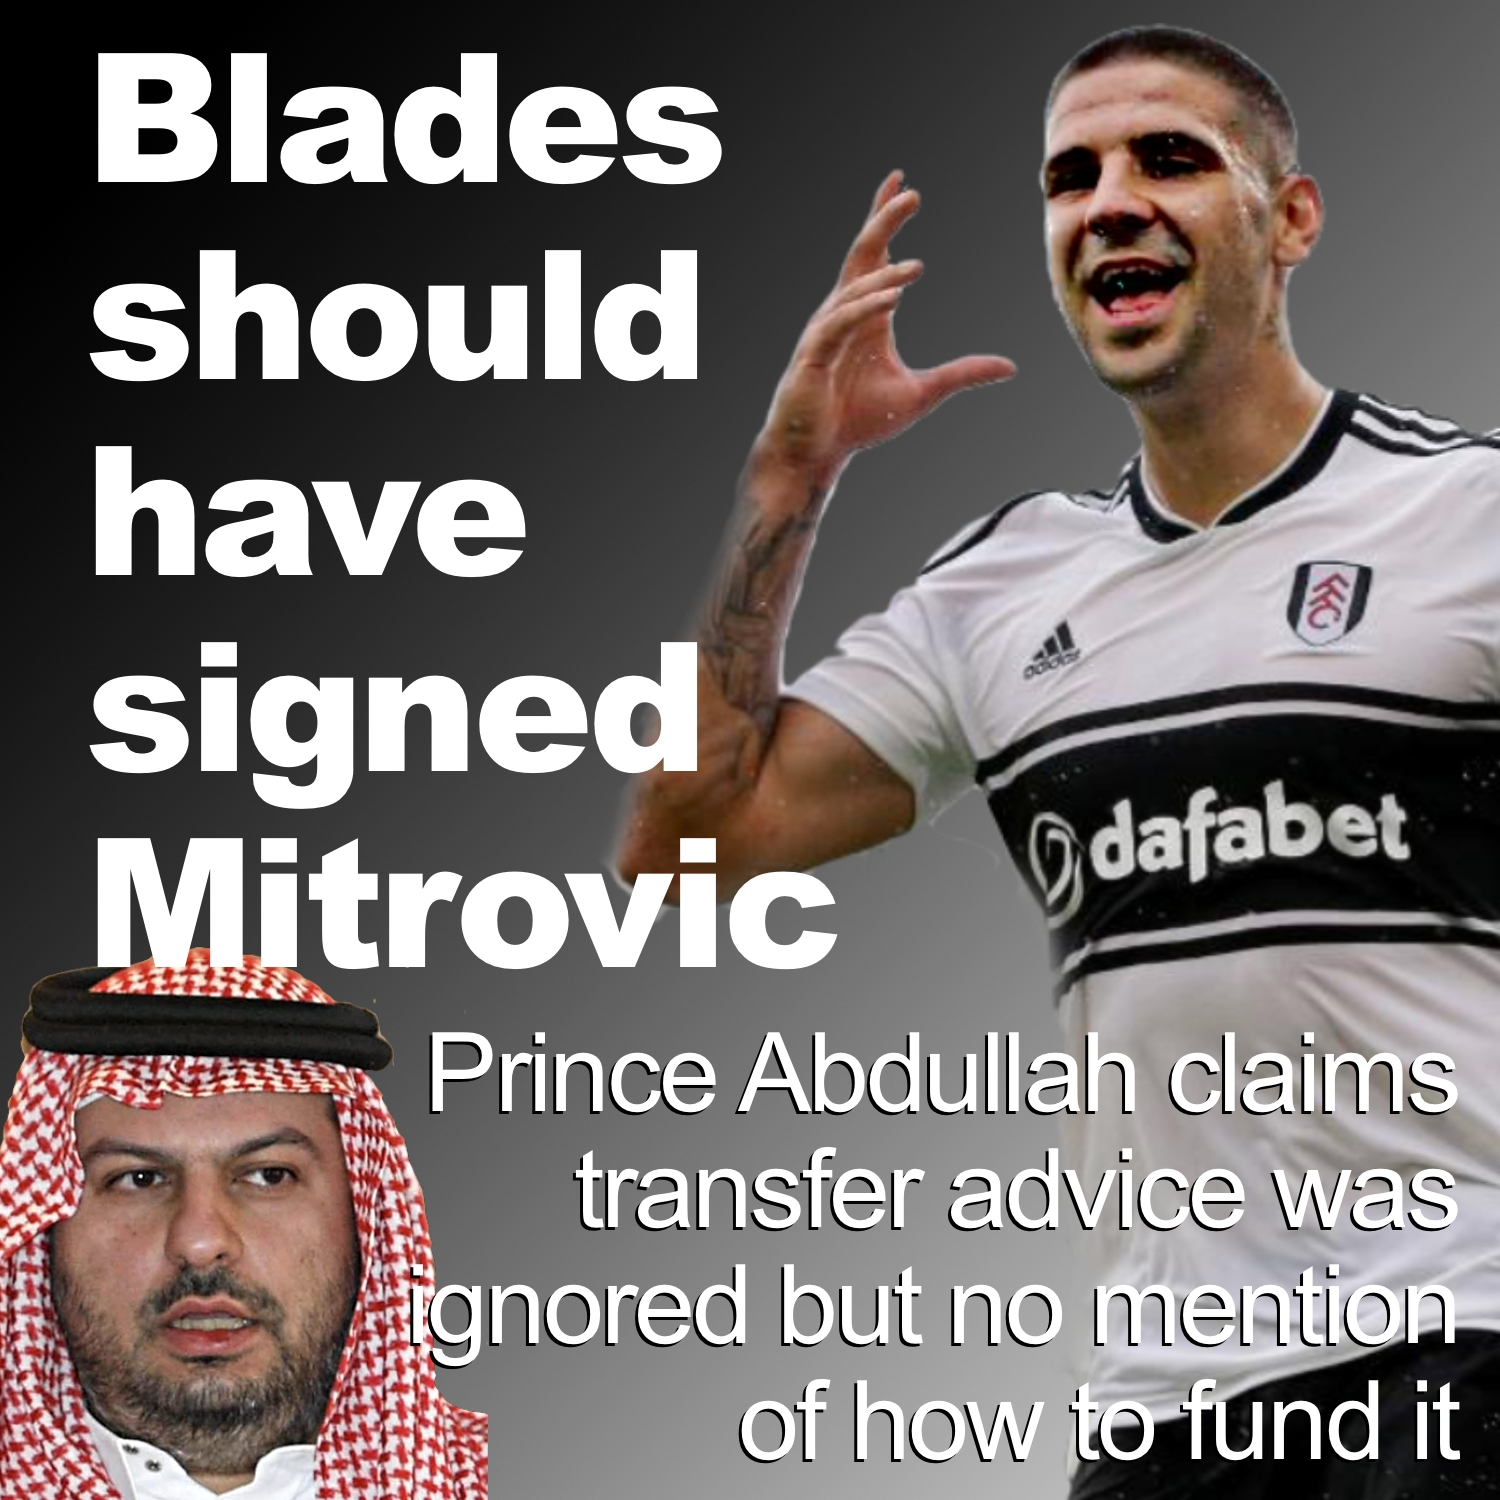 Prince Abdullah claims Sheffield United should have signed Mitrovic